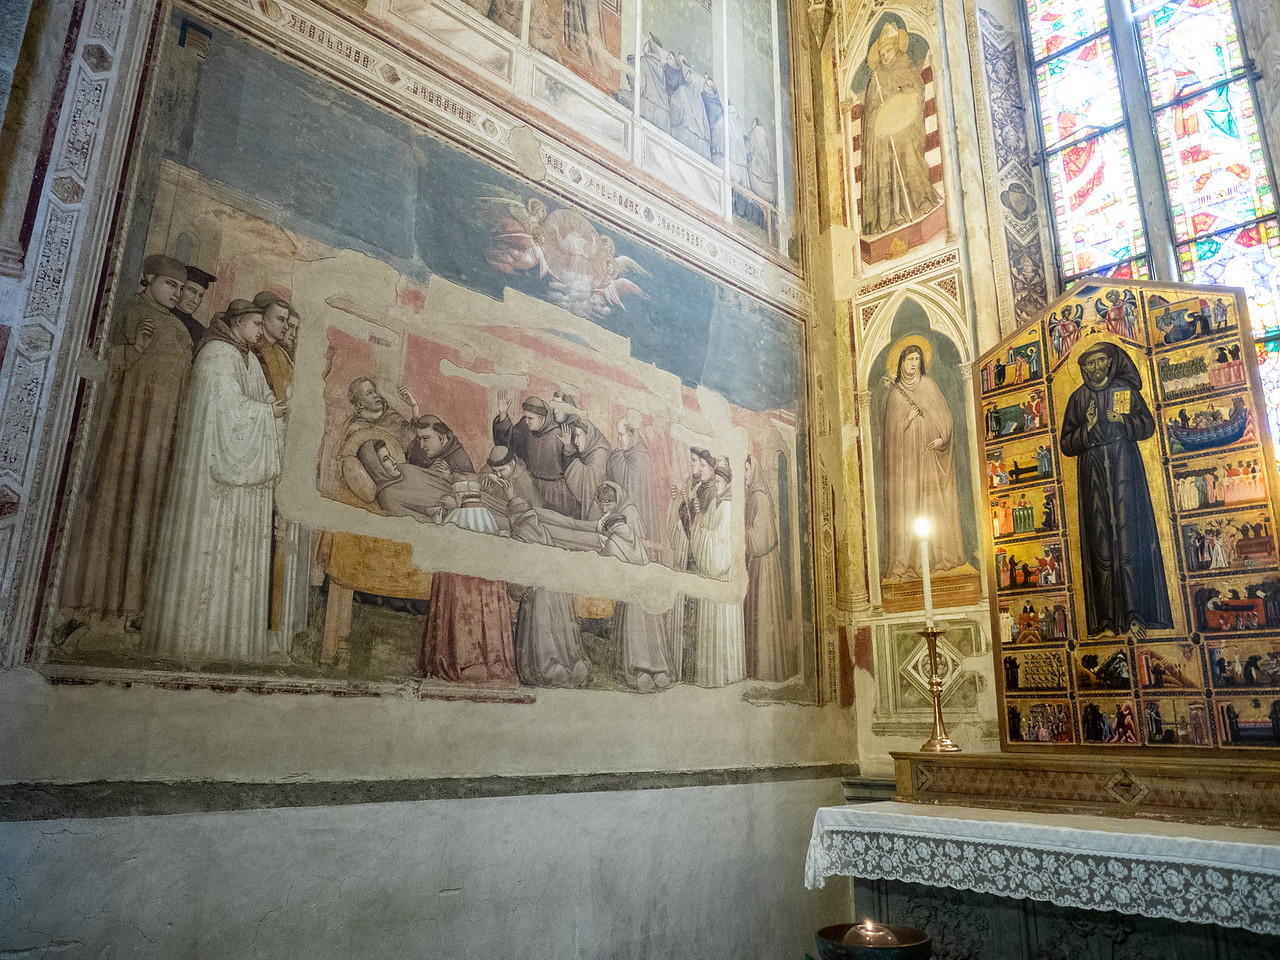 A fresco by Giotto depicting the death of St. Francis.